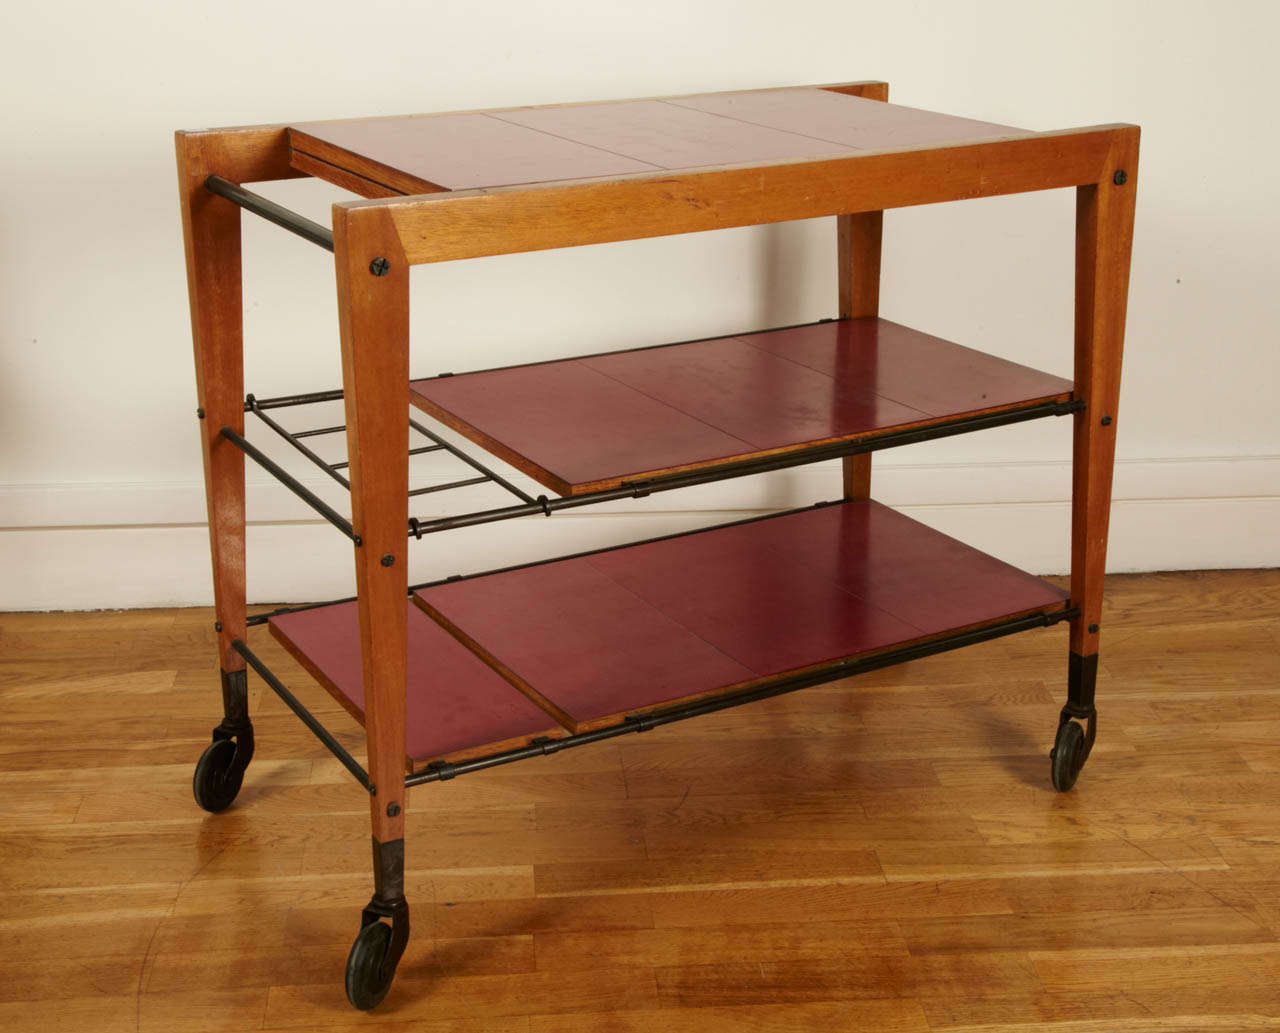 Varnished maple tree trolley table with a black tube steel structure and three sliding paneled boards. The top board unfolds. This table was shown at the 1956 Salon des Artistes Decorateurs and was awarded at the Salon Des Arts Menagers in 1957. The